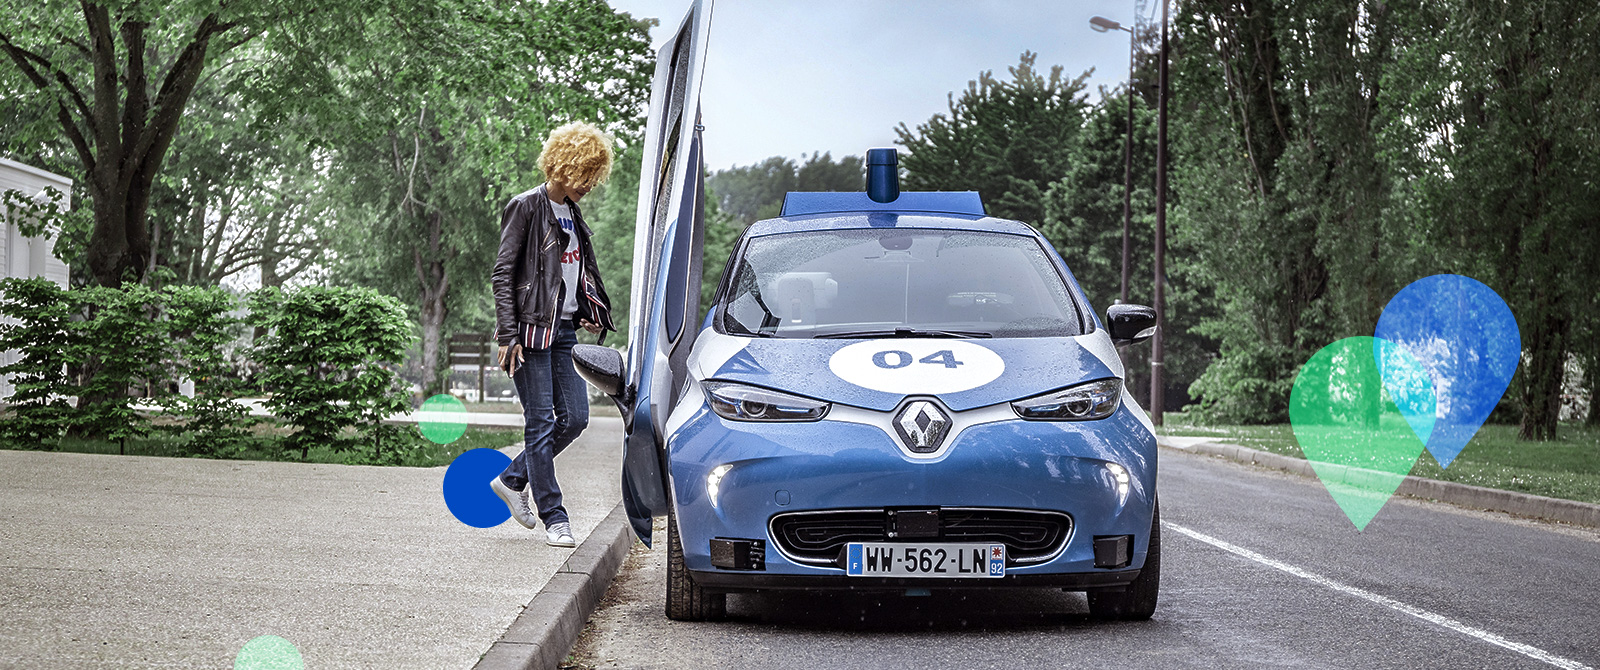 Autonomous shared mobility: from fiction to reality